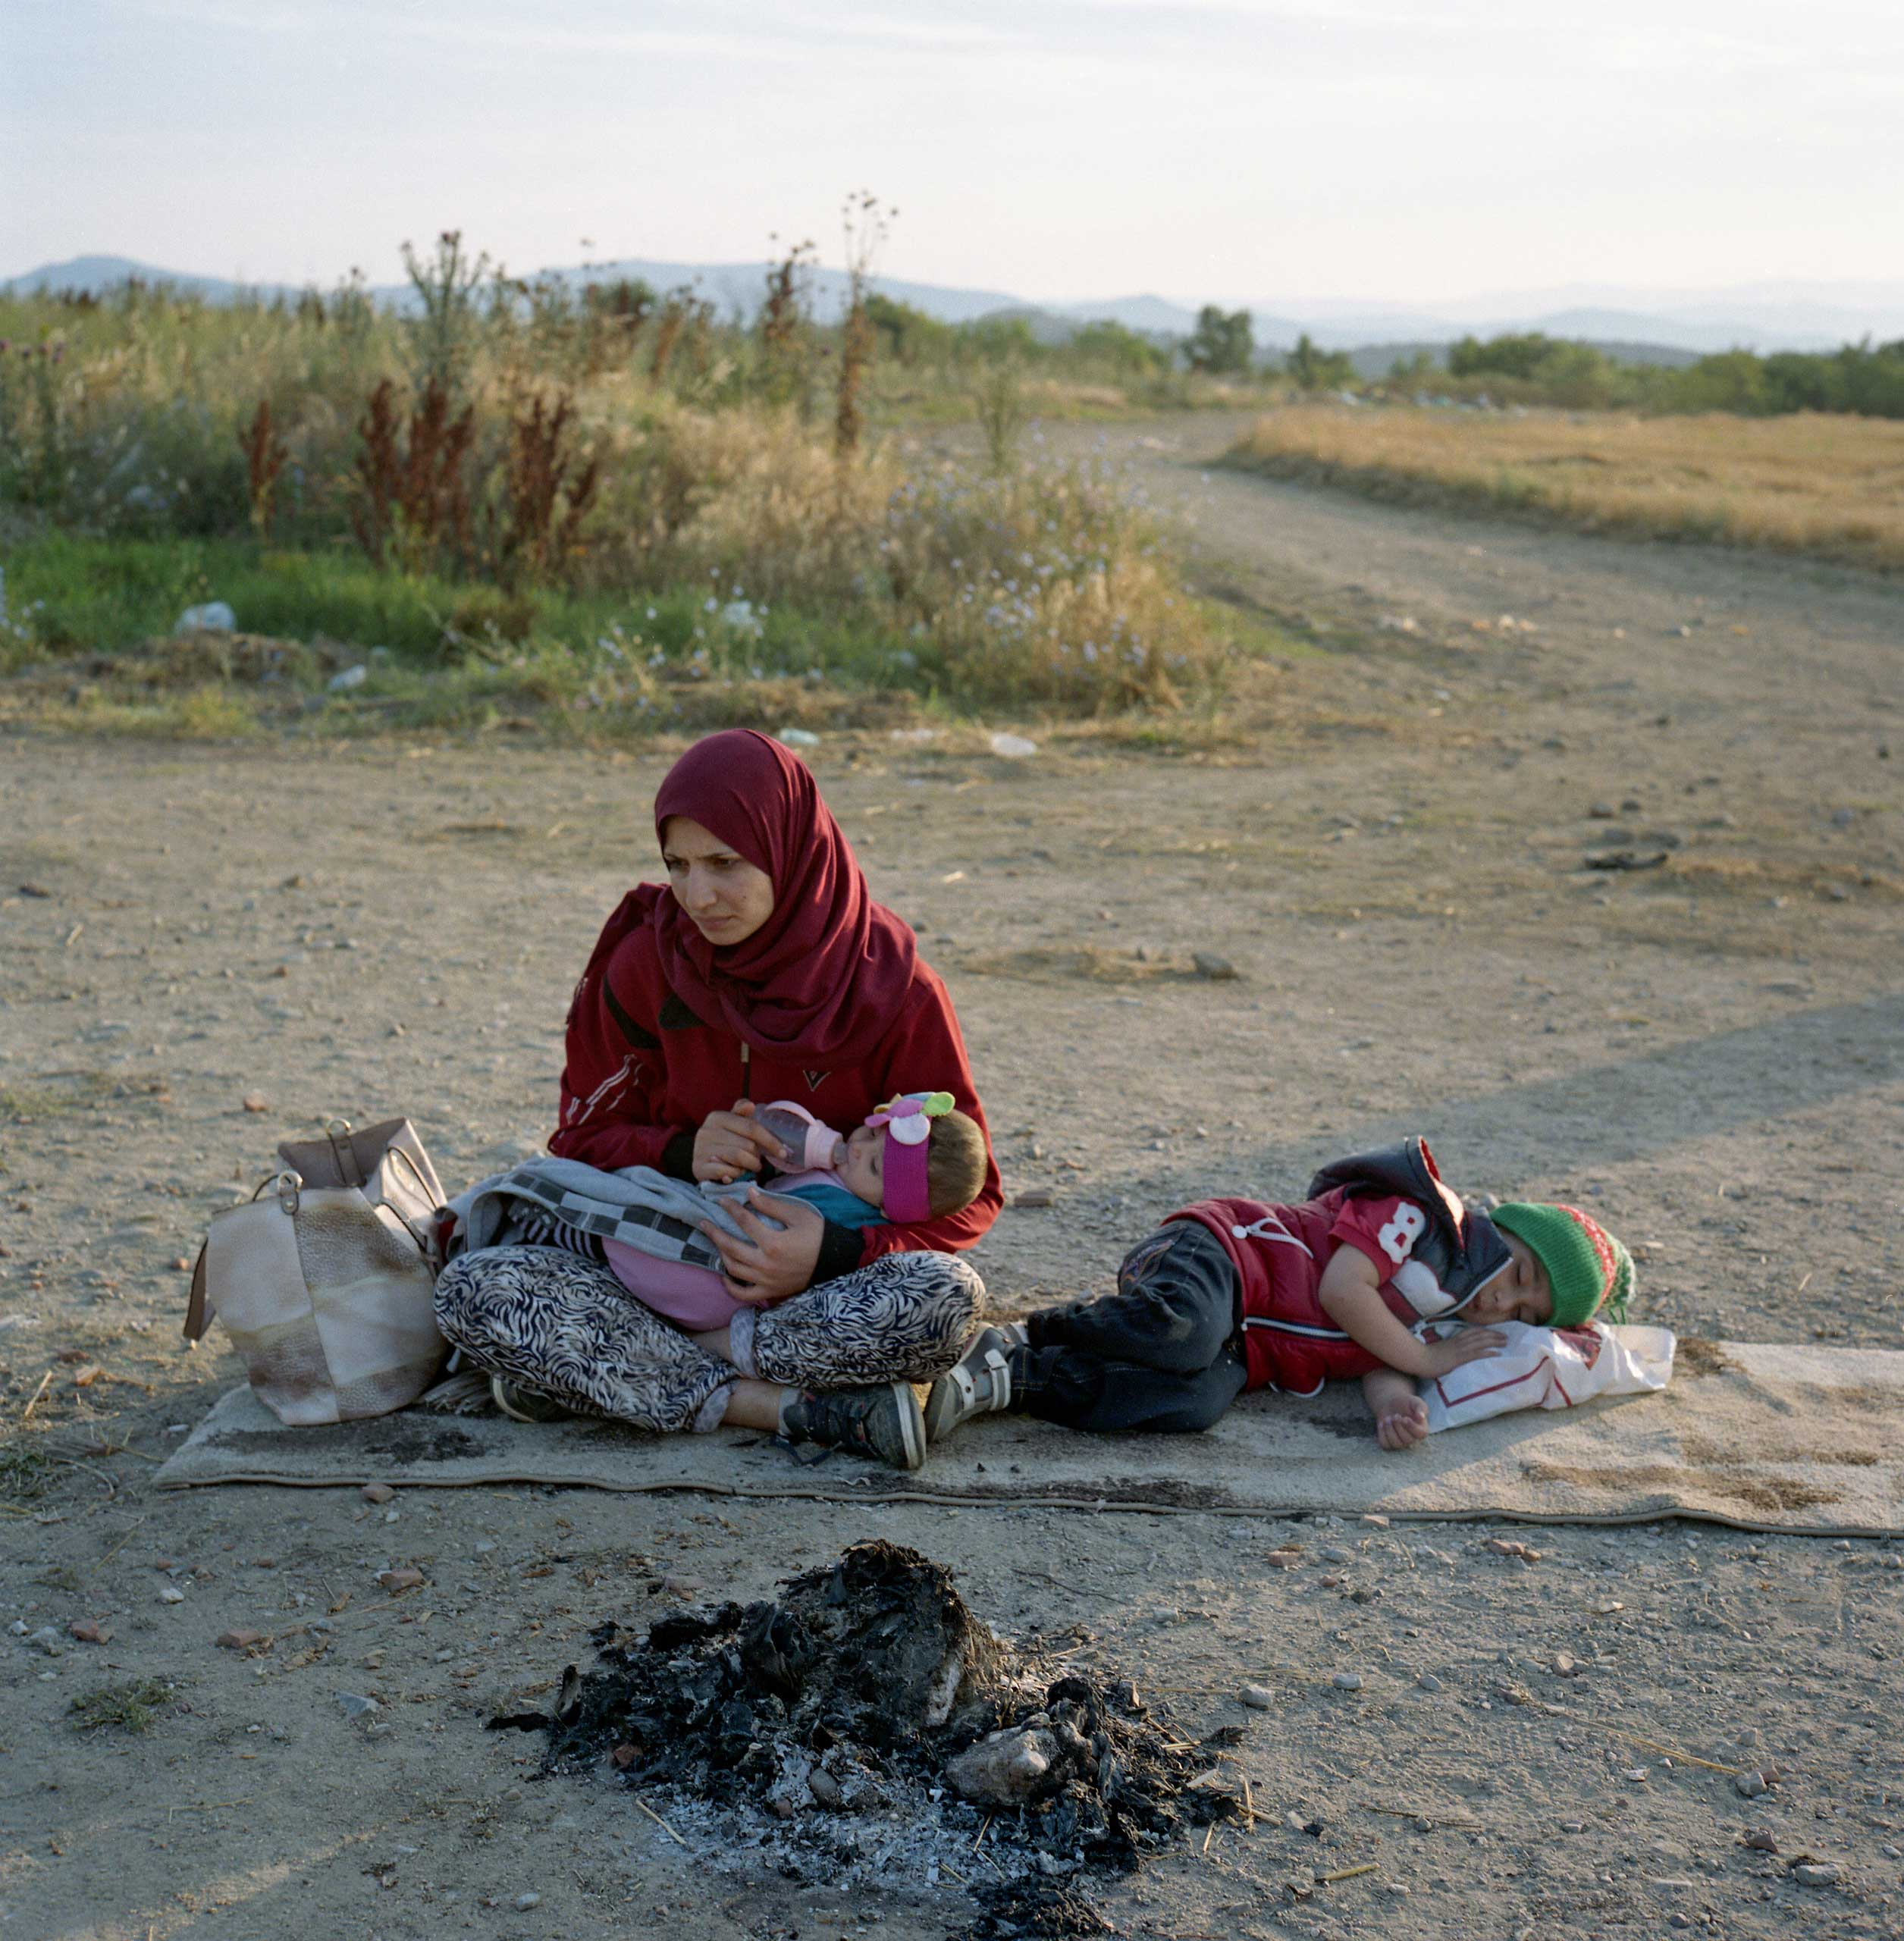 Syrian mother feeding her child as she waits along with her family for a chance to cross into Macedonia. According to International Organization for Migration, over 59,000 people have crossed into Greece in between January and May 2015, approximately 50% of migrants are from Syria. Greece, June 2015.